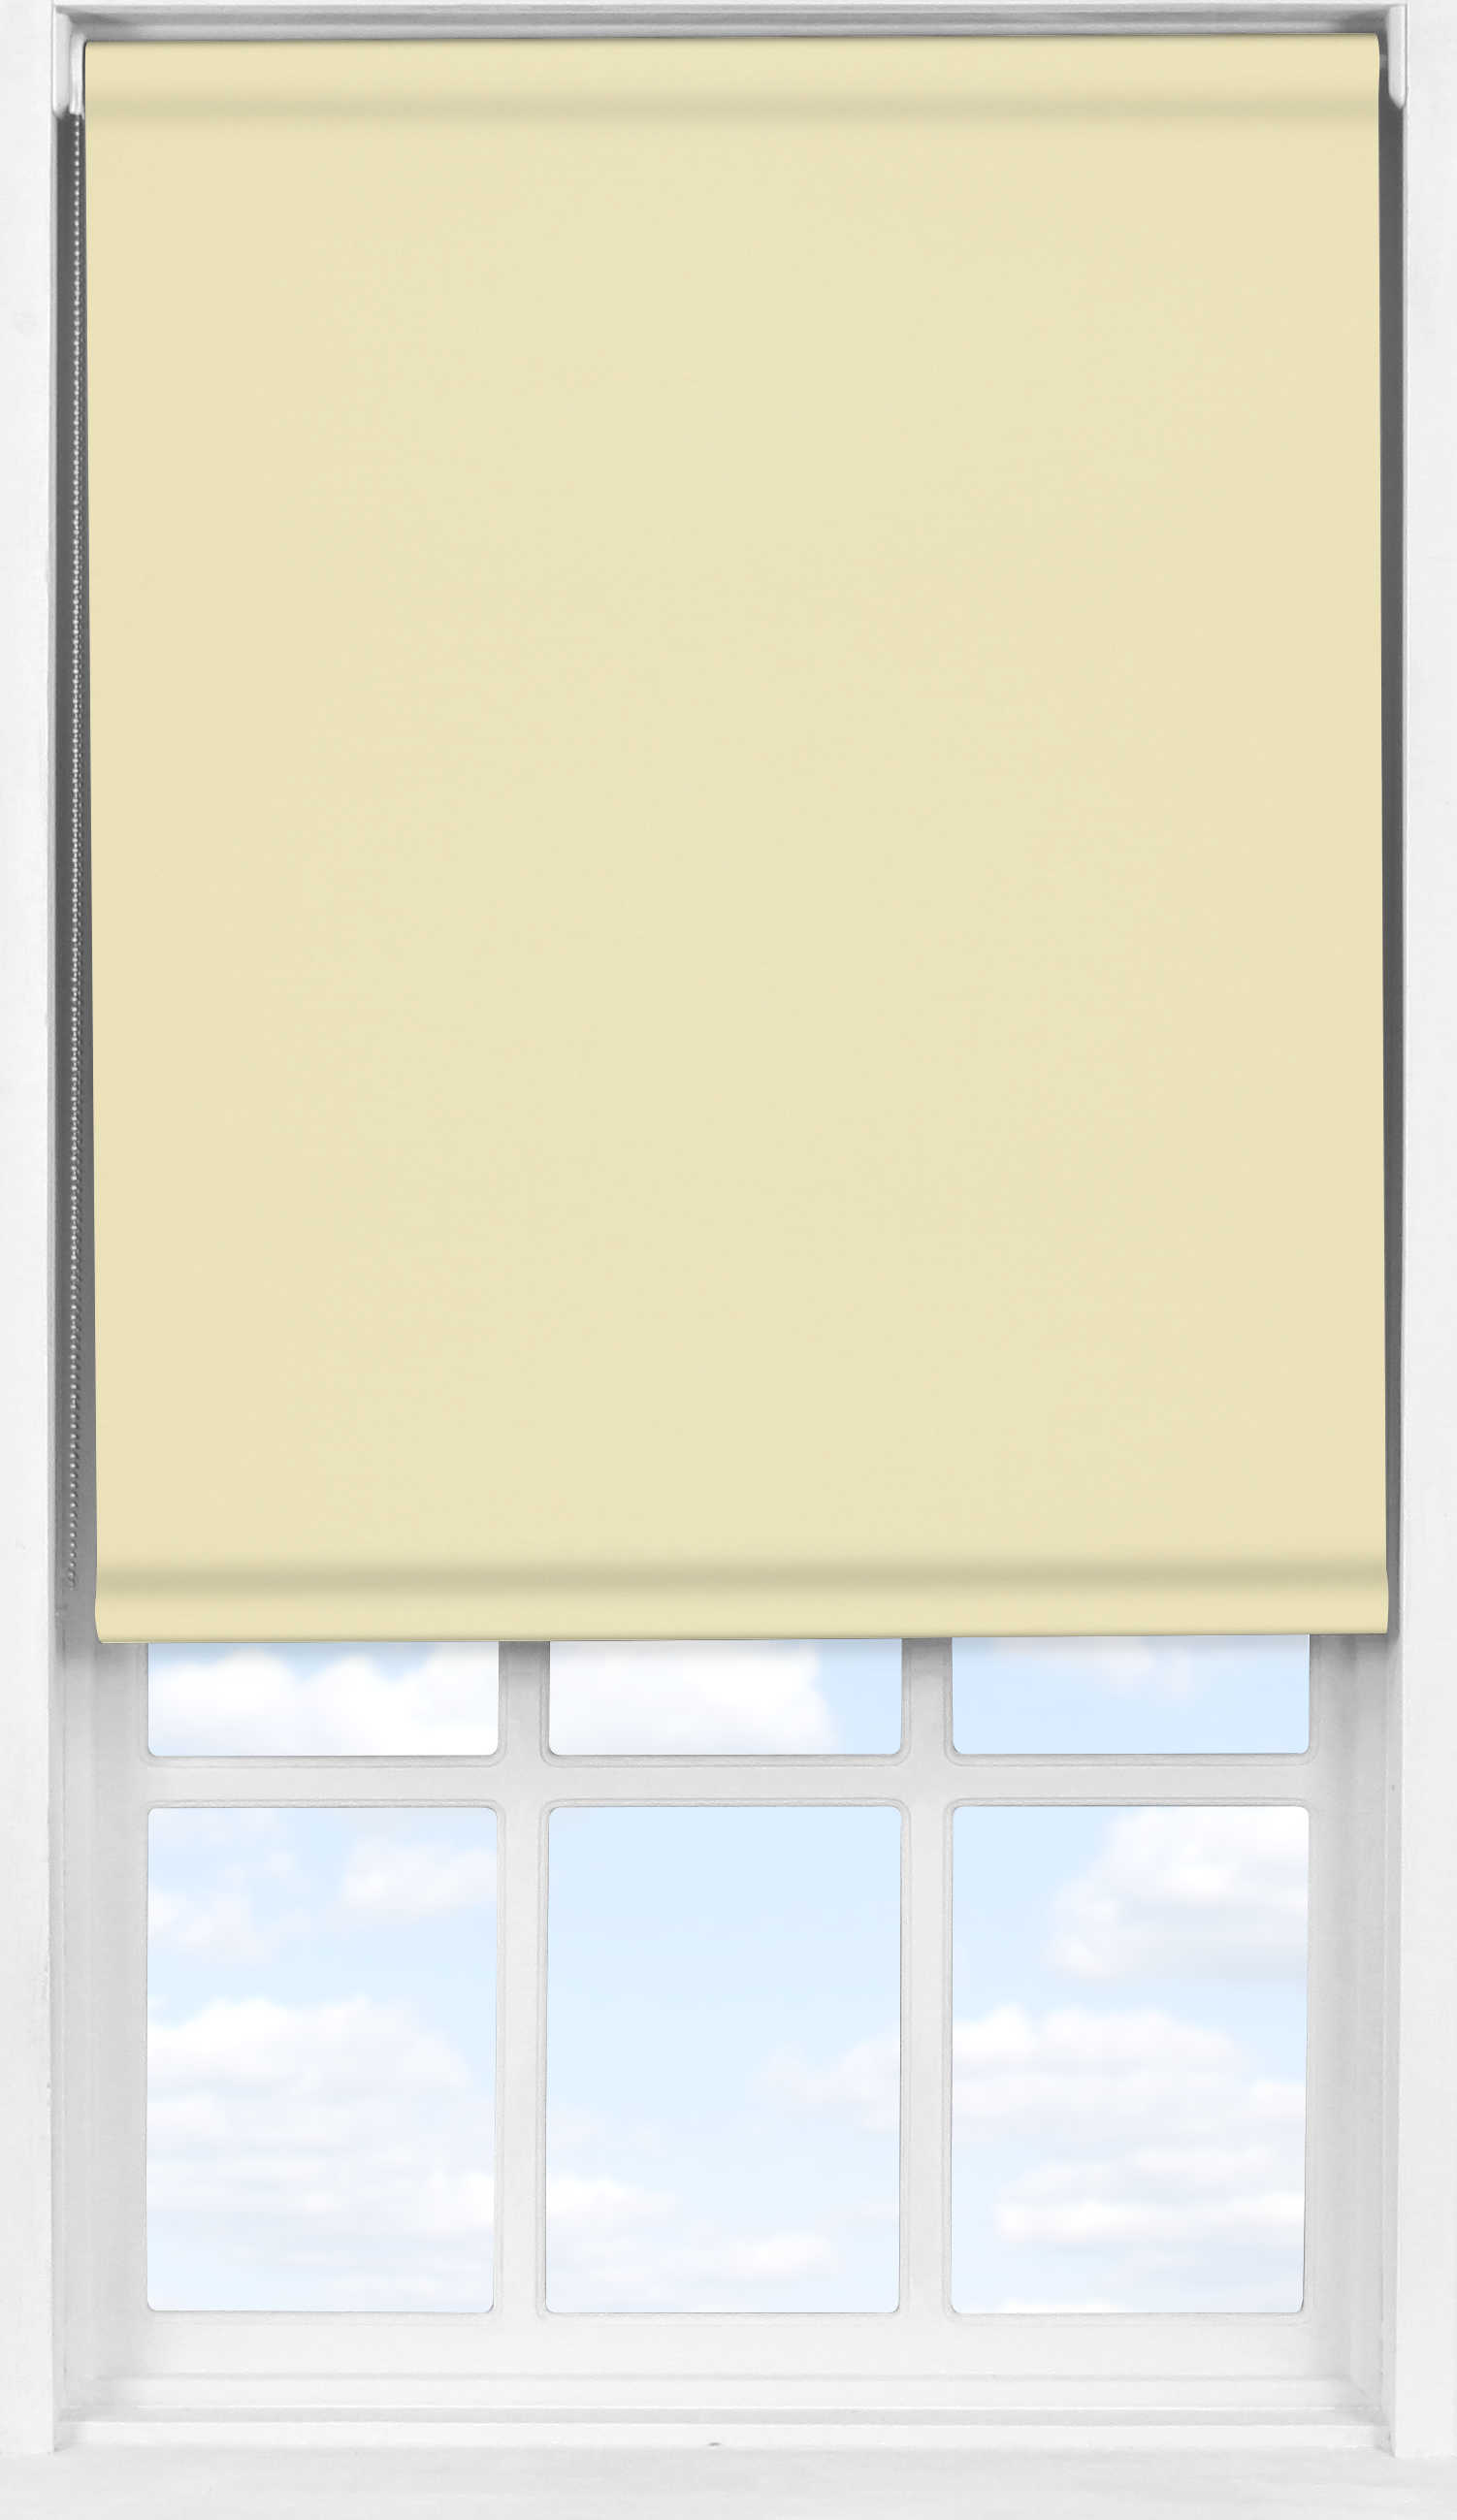 Easifit Roller Blind in Latte Cream Blackout